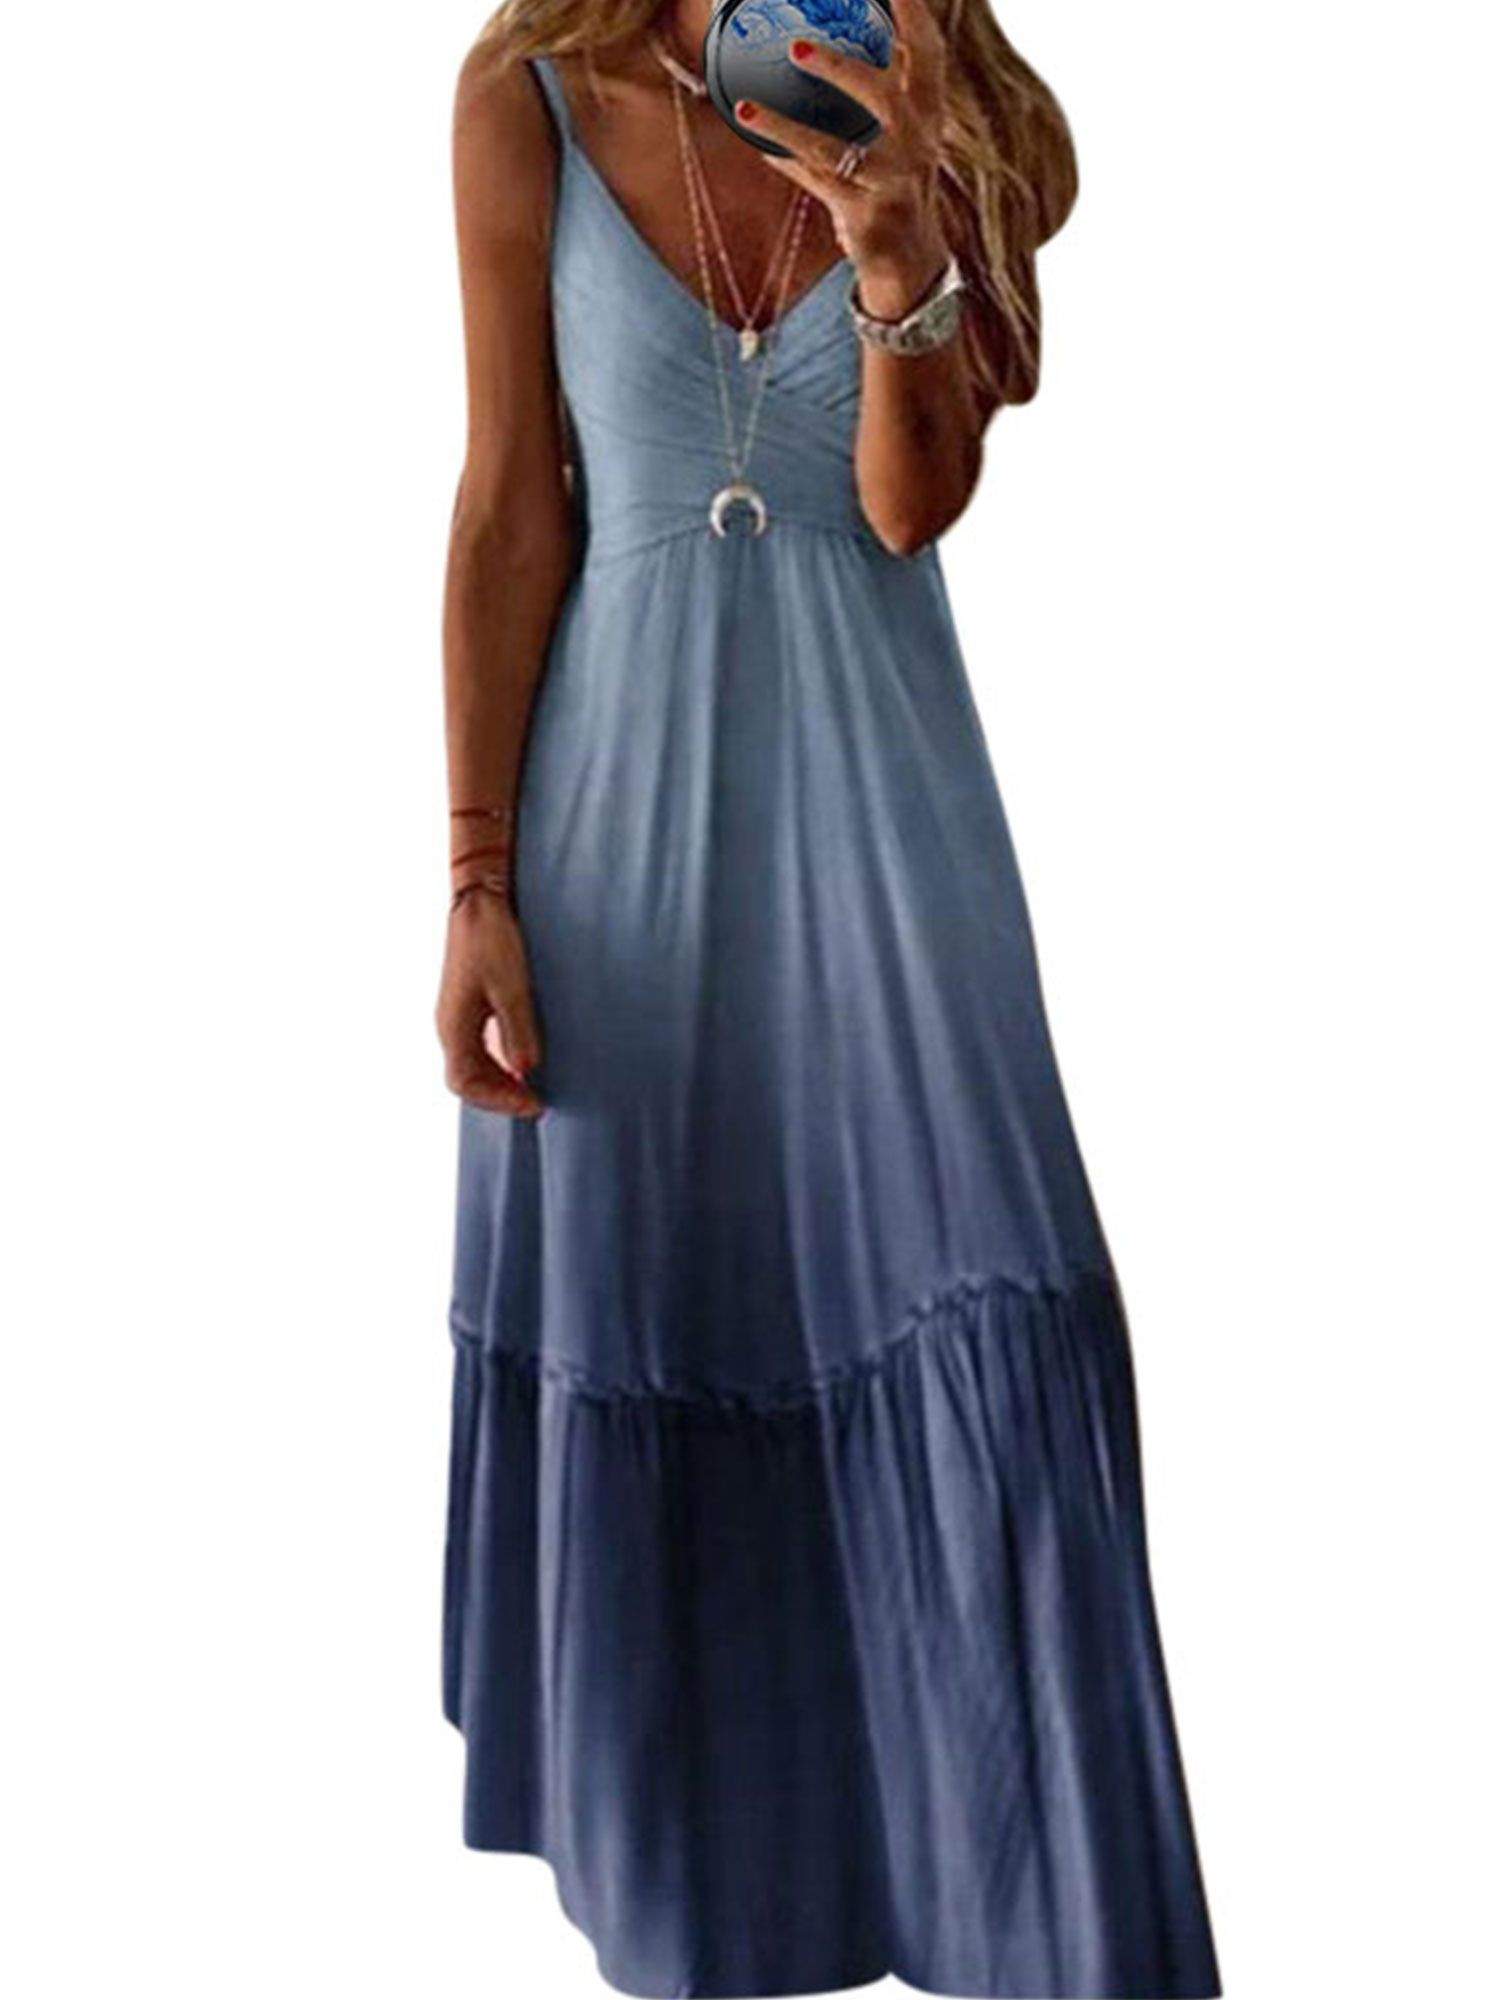 Picked Up From Walmart Free 2 Day Shipping On Qualified Orders Over 35 Buy Ladies Spaghetti Strap Maxi Dre Maxi Dresses Casual Boho Dresses Long Maxi Dress [ 2000 x 1500 Pixel ]